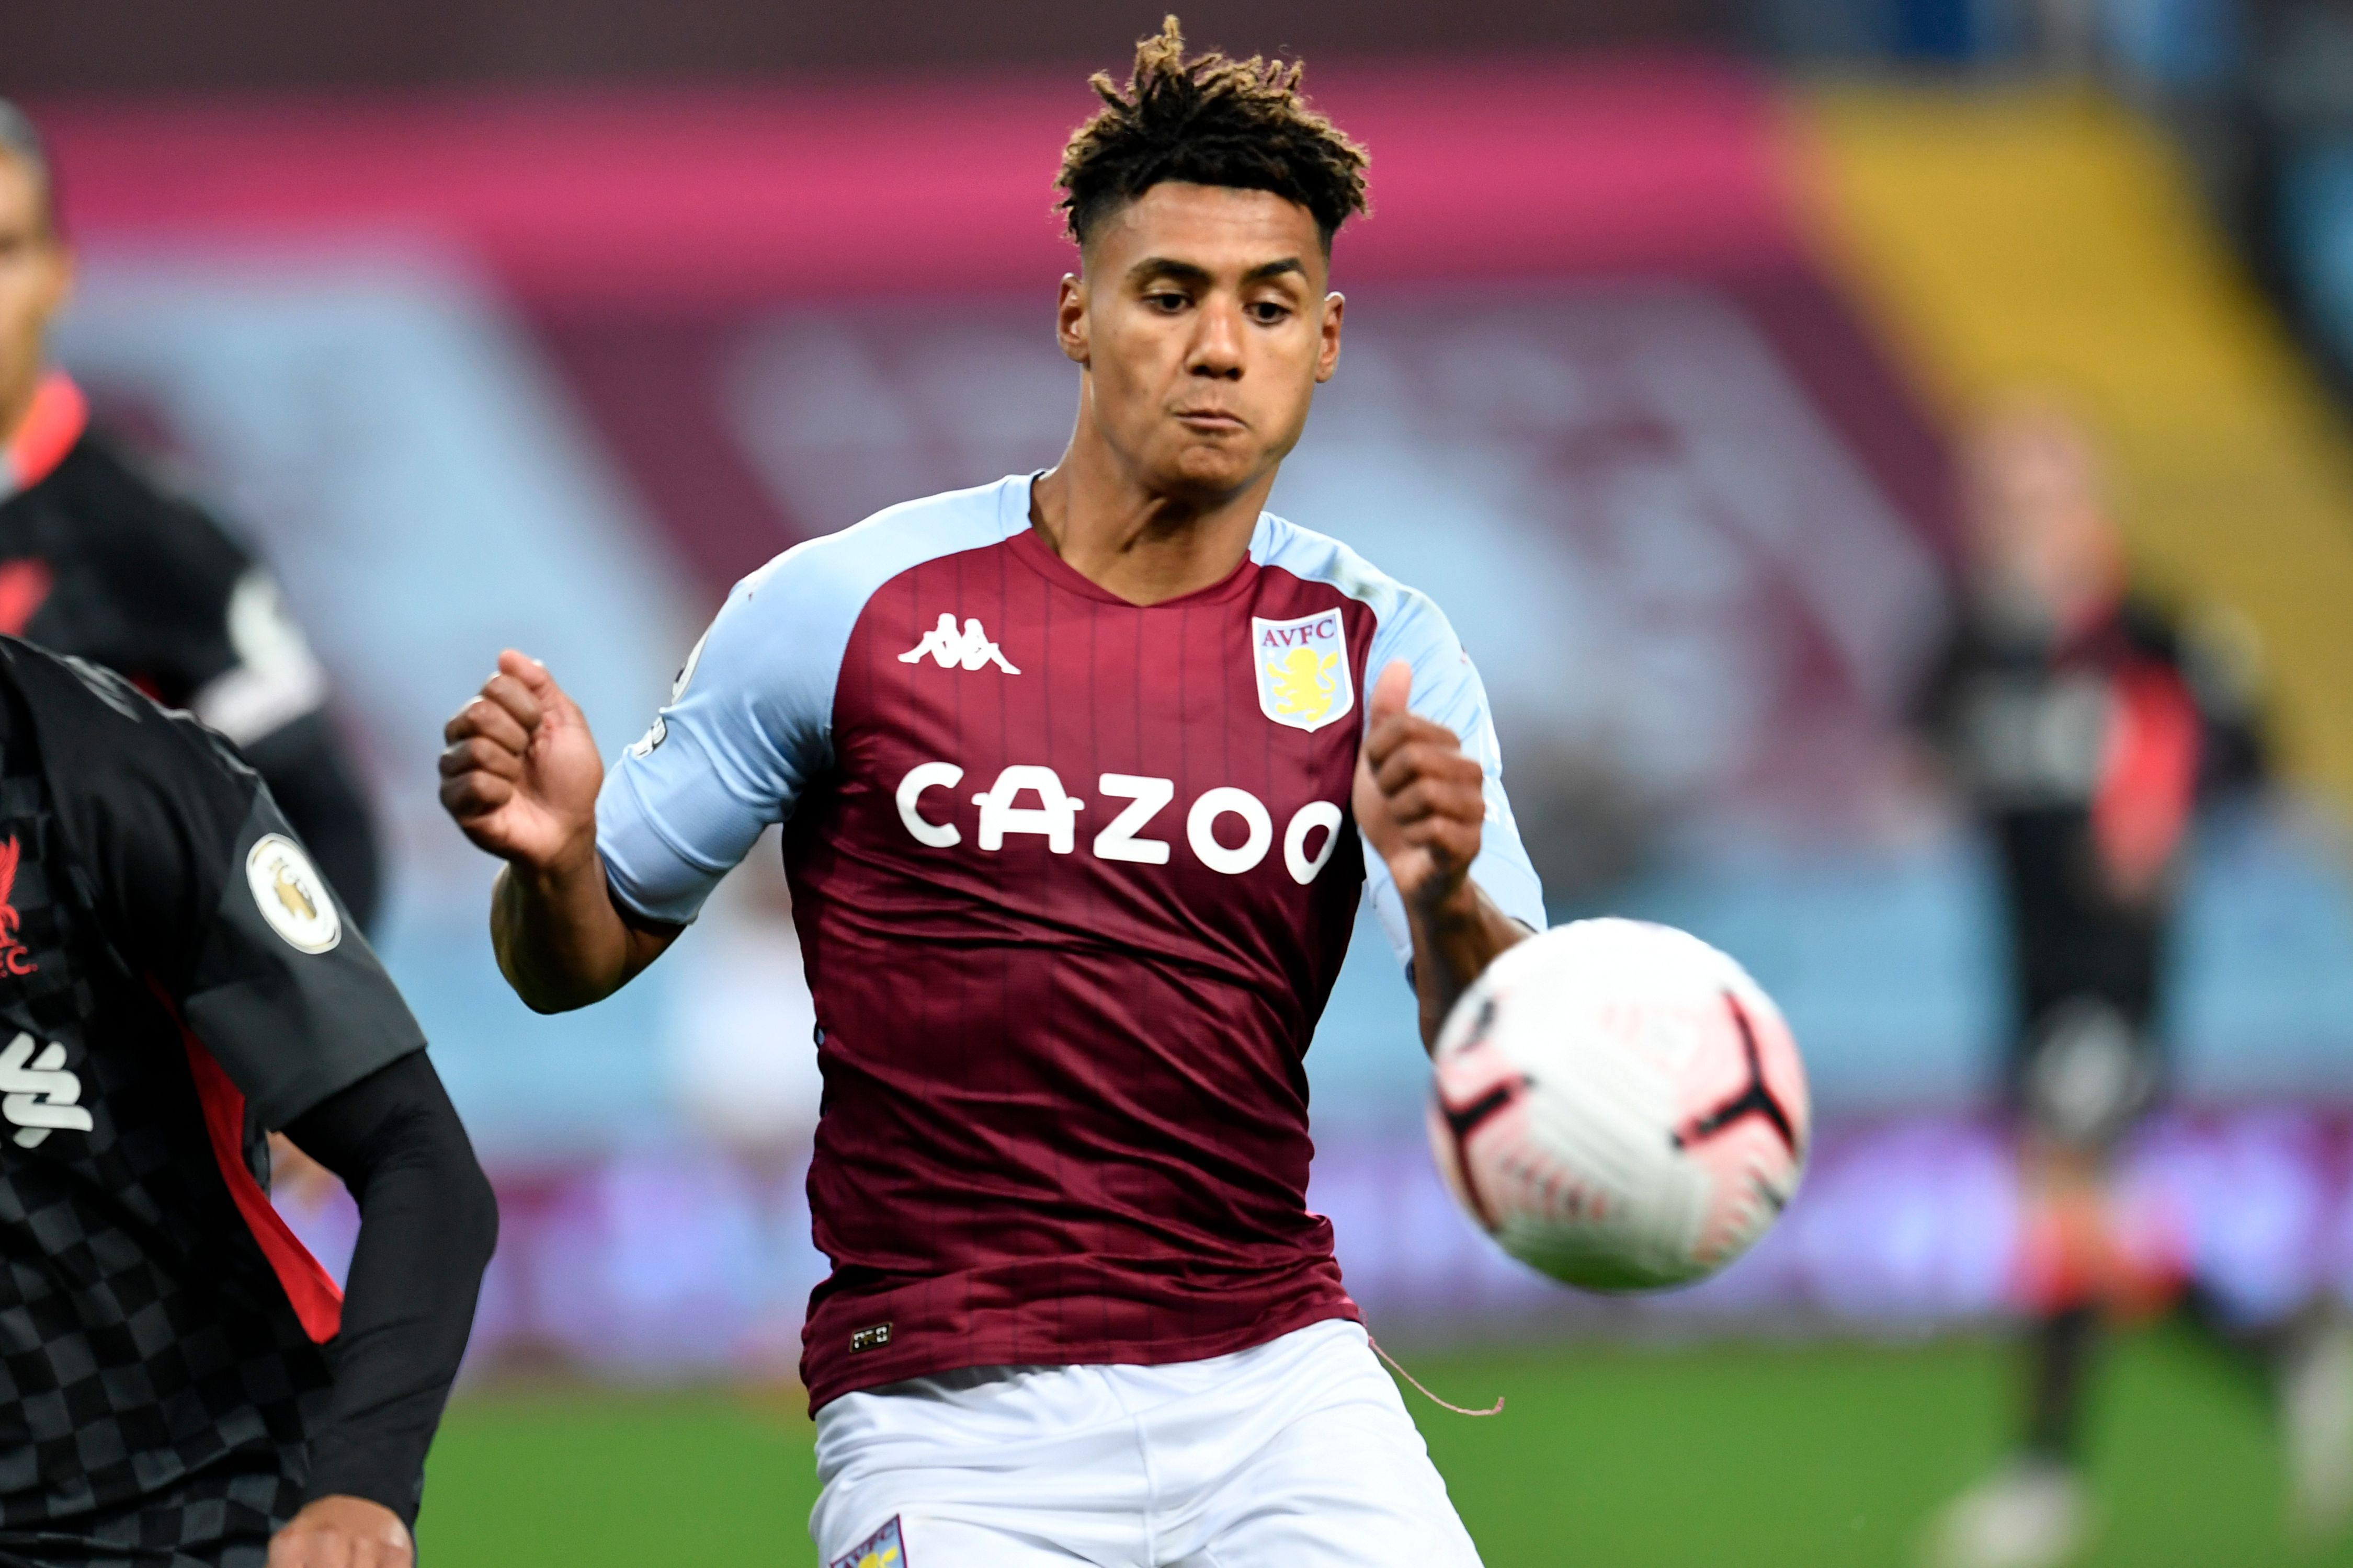 Dean Smith full of praise for Aston Villa's Ollie Watkins who is in action in the photo